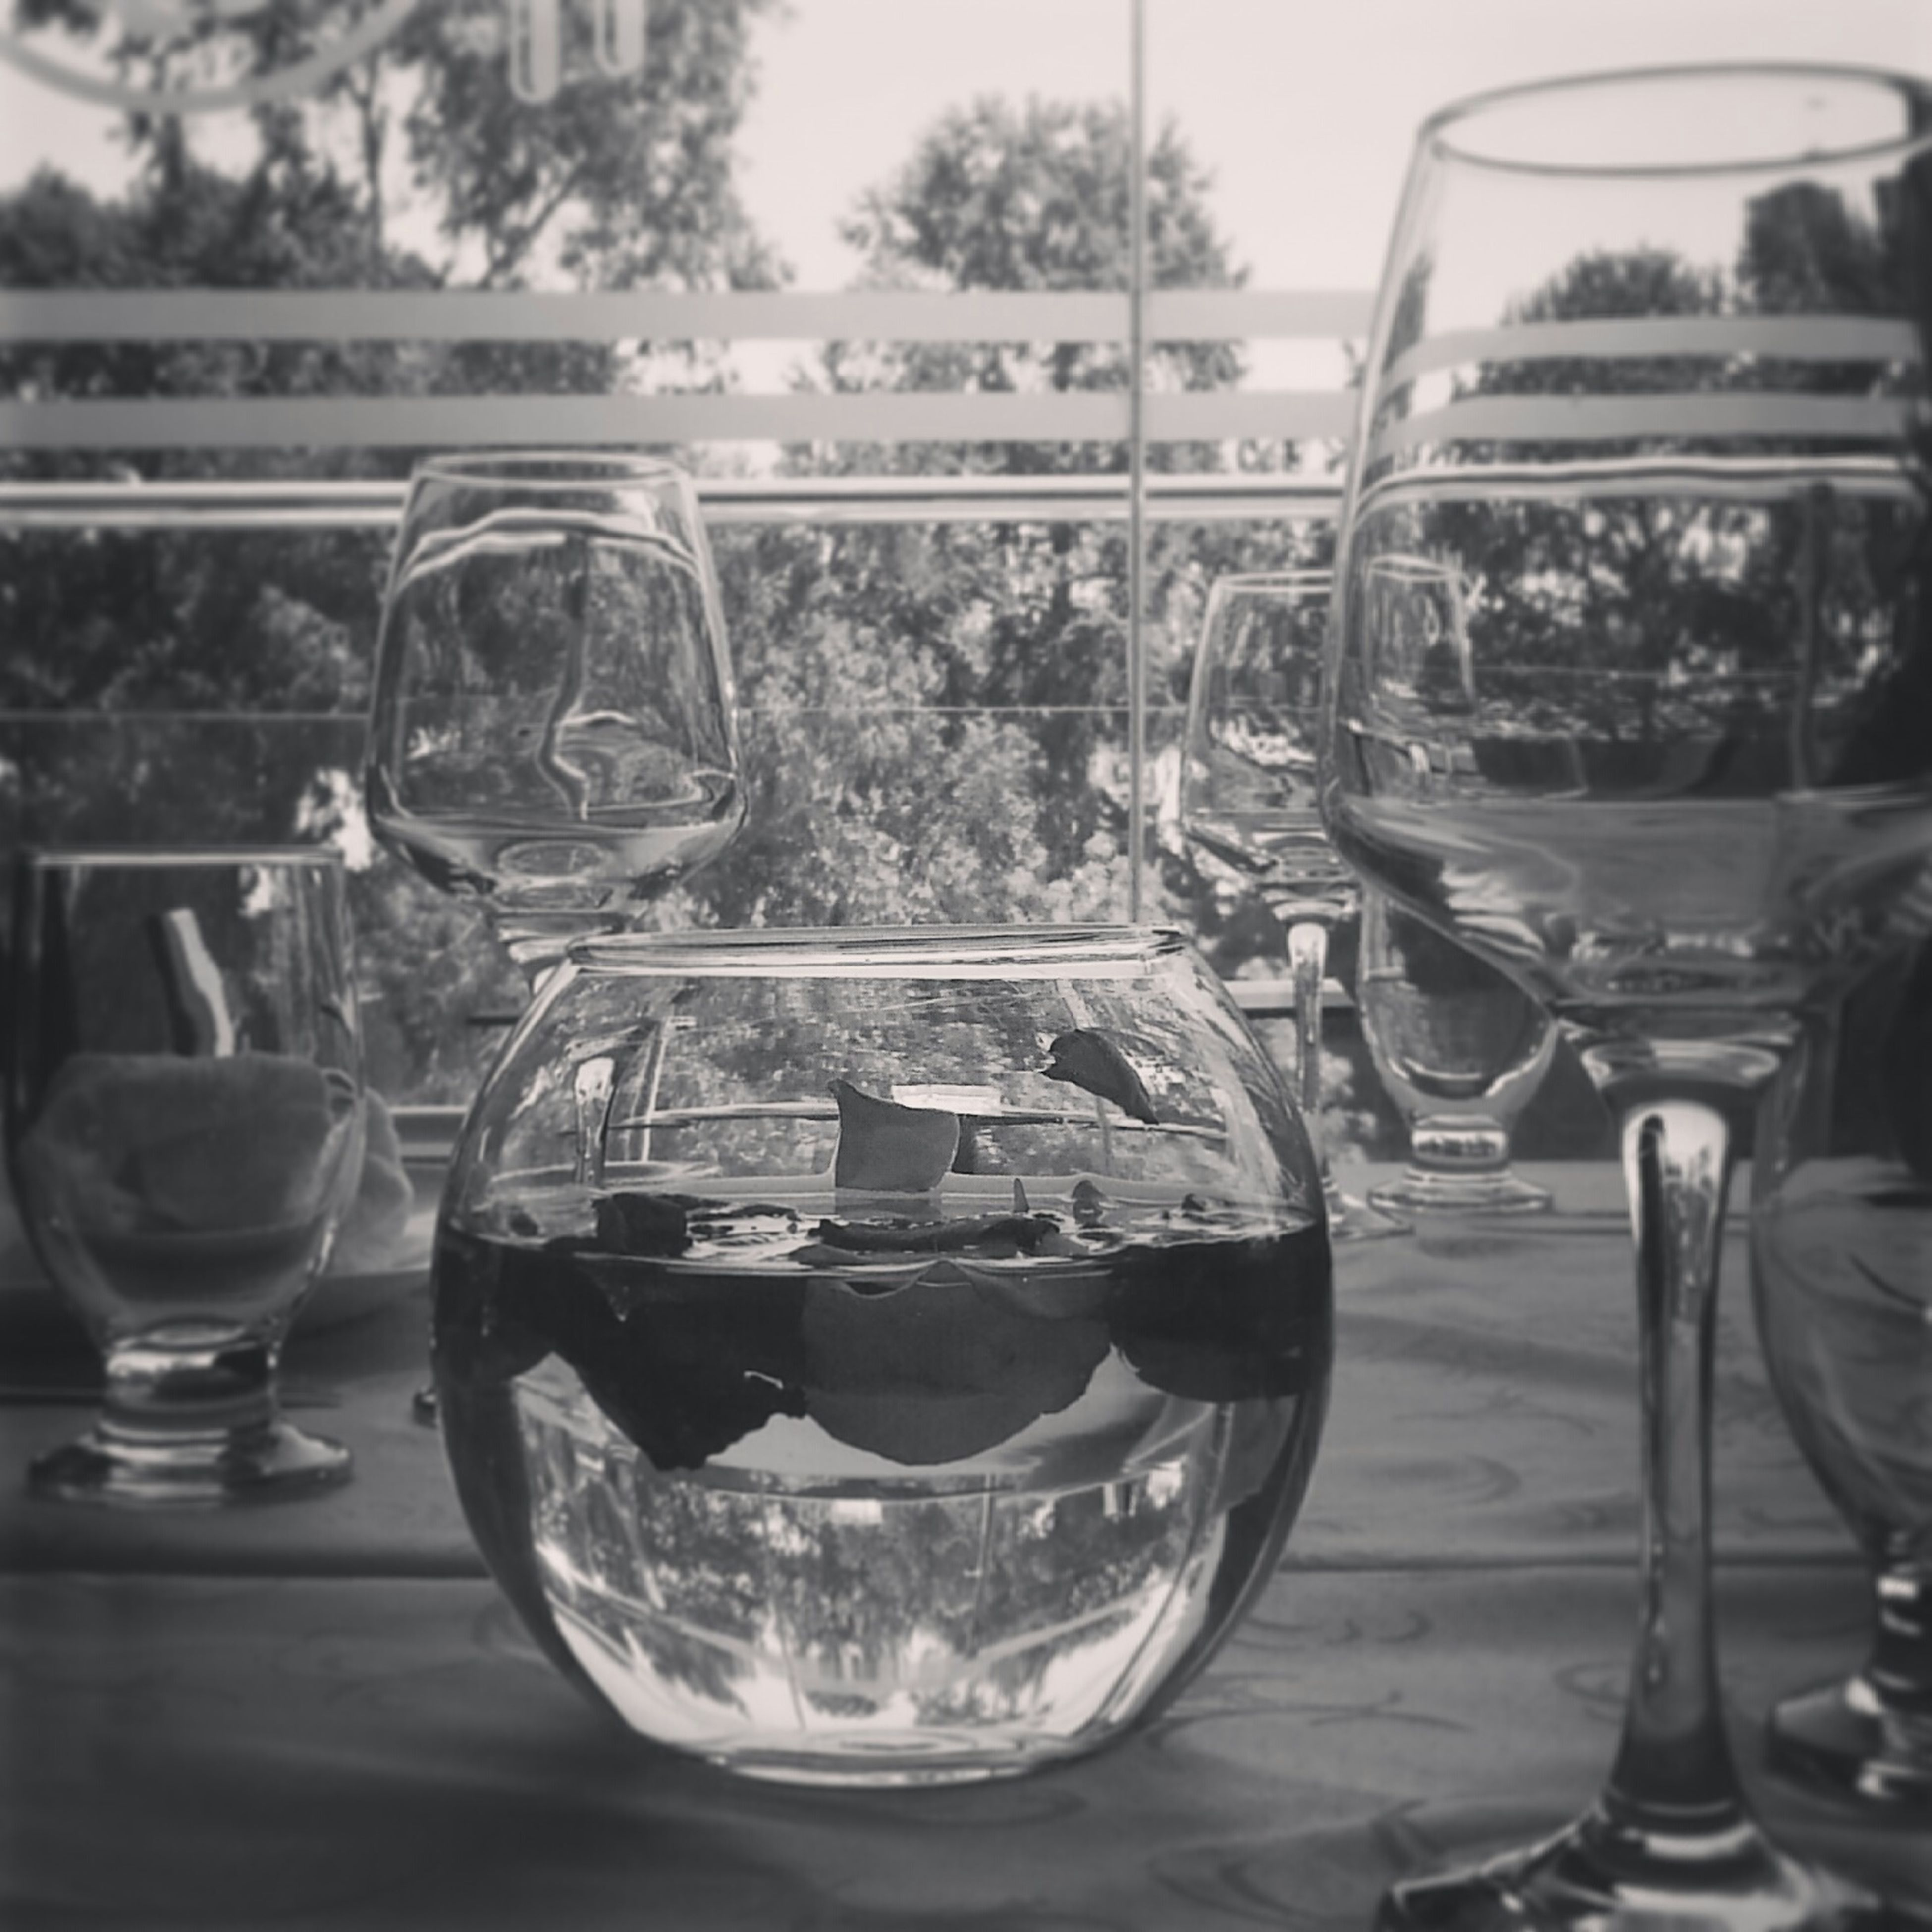 food and drink, glass - material, drink, table, drinking glass, transparent, refreshment, freshness, indoors, wineglass, restaurant, glass, focus on foreground, alcohol, still life, wine, close-up, incidental people, jar, day